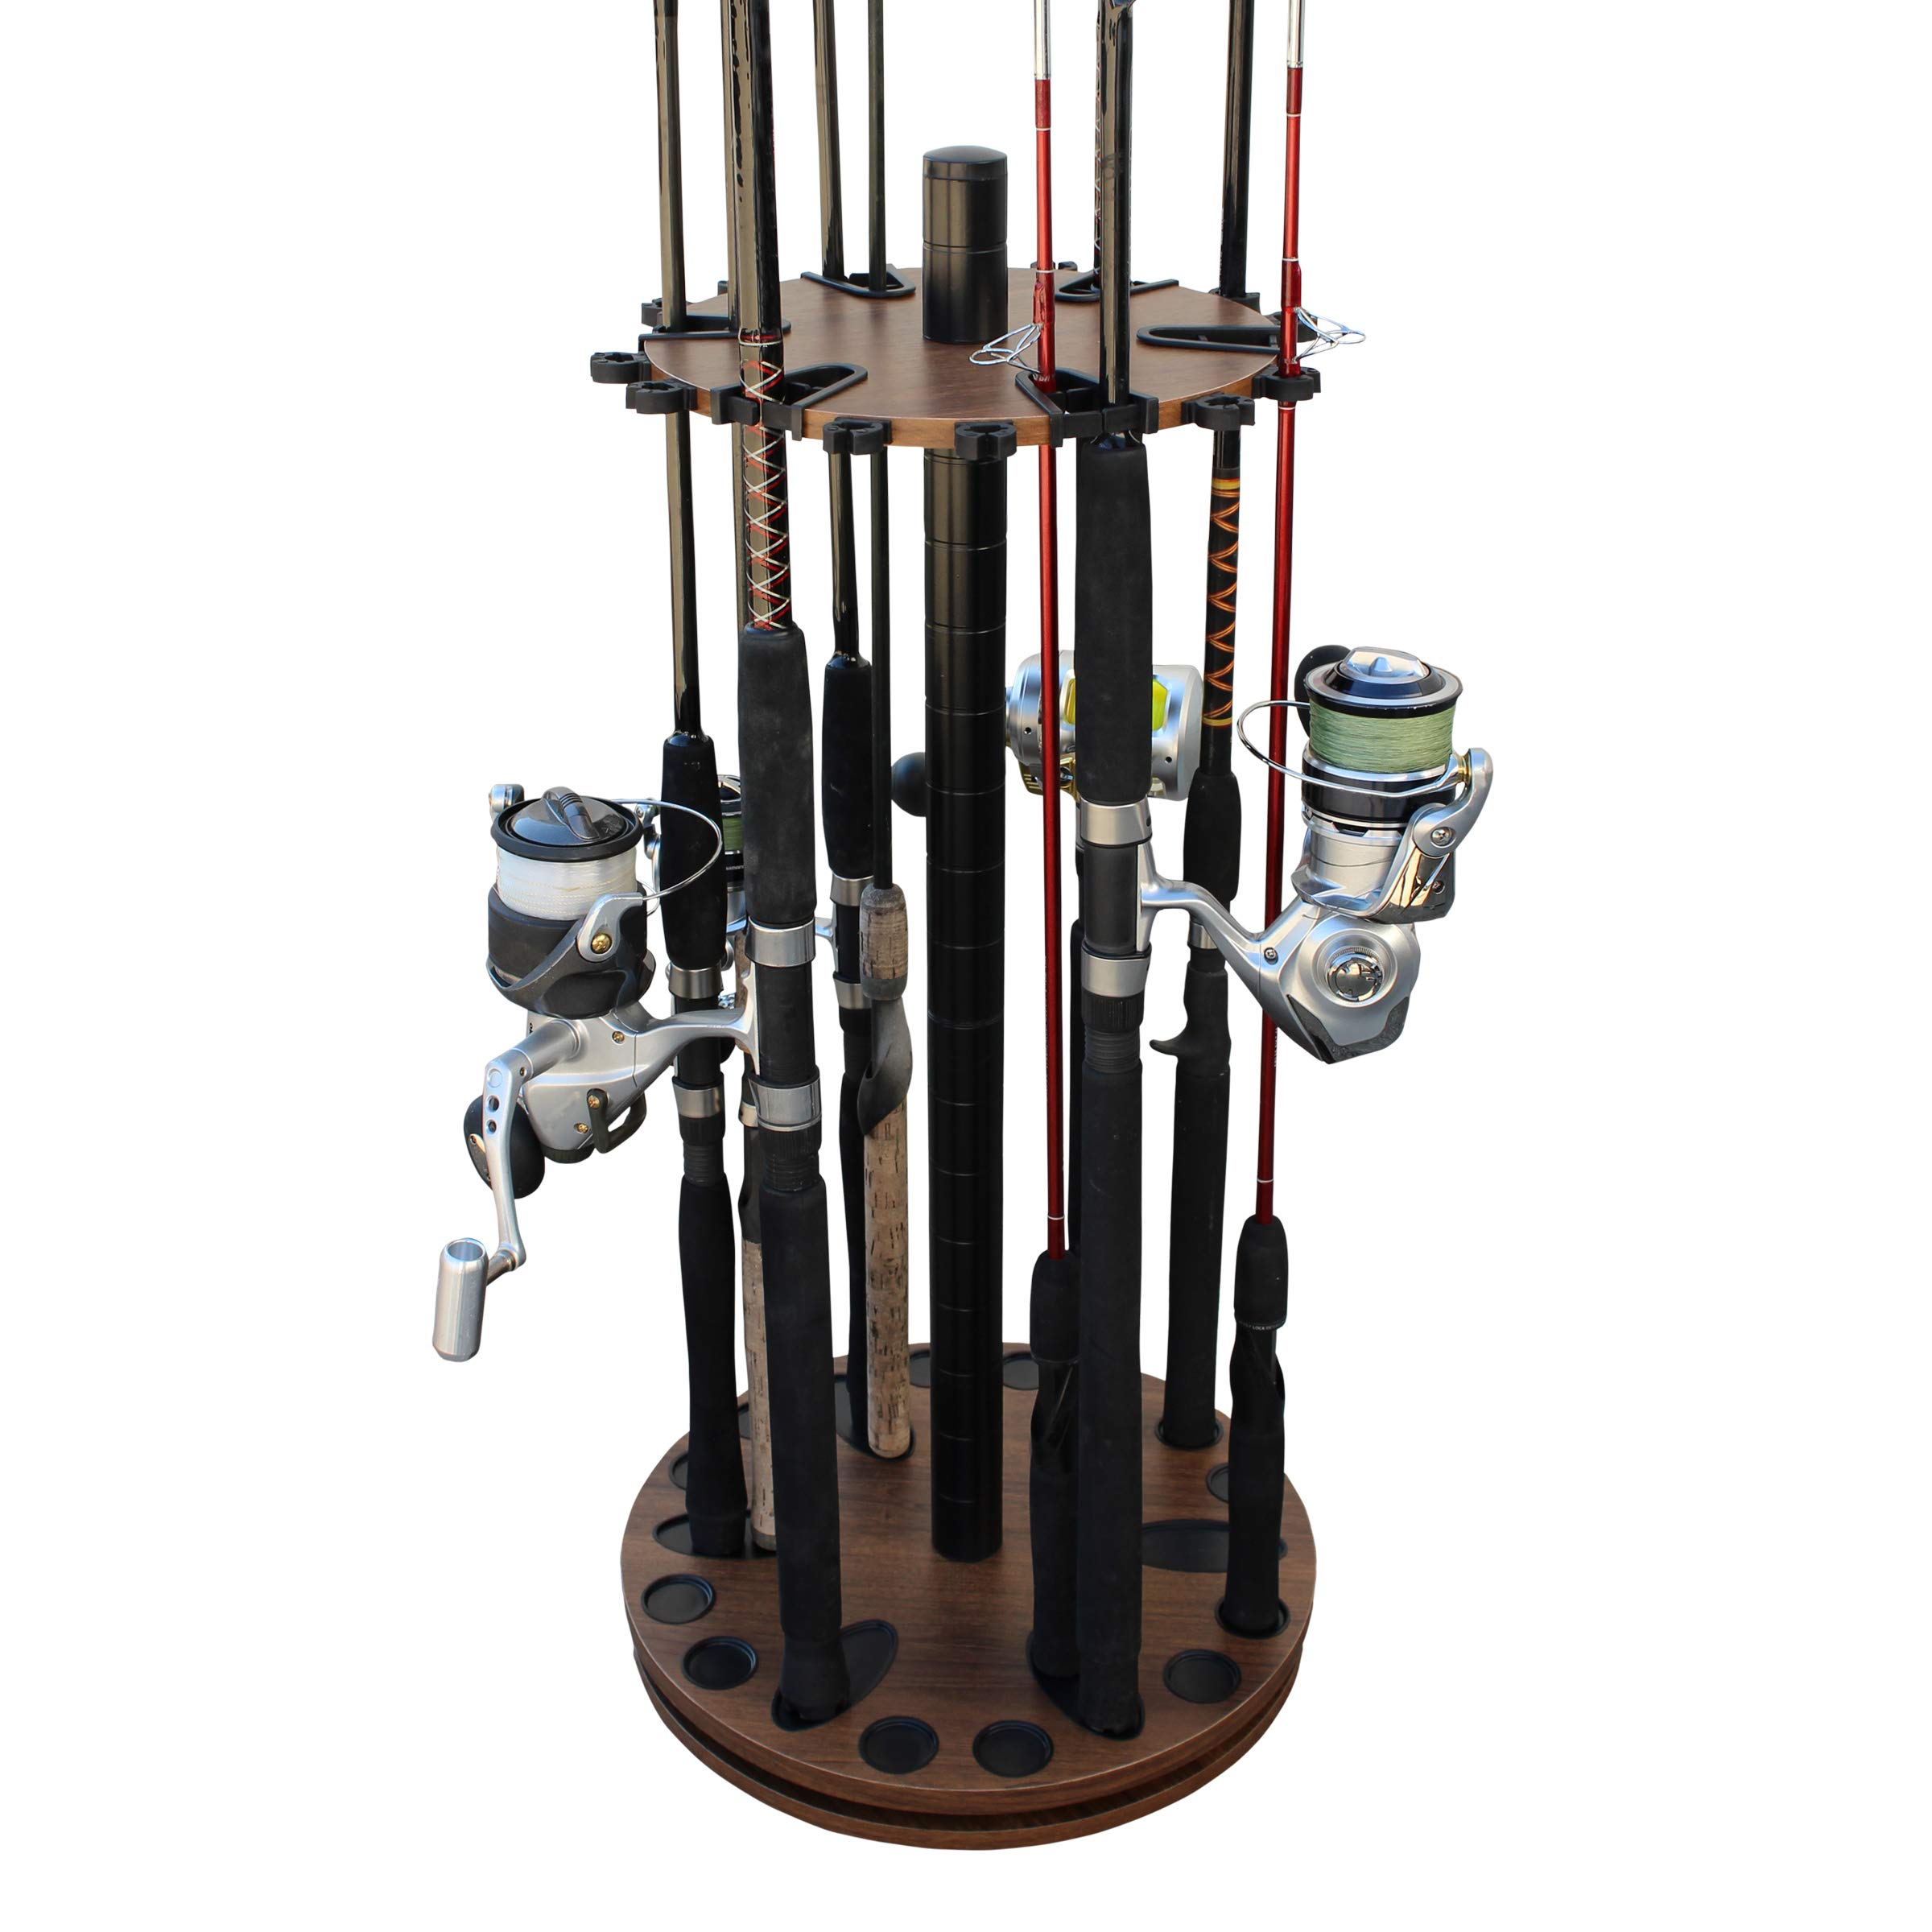 Rush Creek Creations 24 Round Spinning Fishing Rod/Pole Storage Floor Rack Dark Walnut Finish - Features Heavy Duty Steel Post - No Tool Assembly